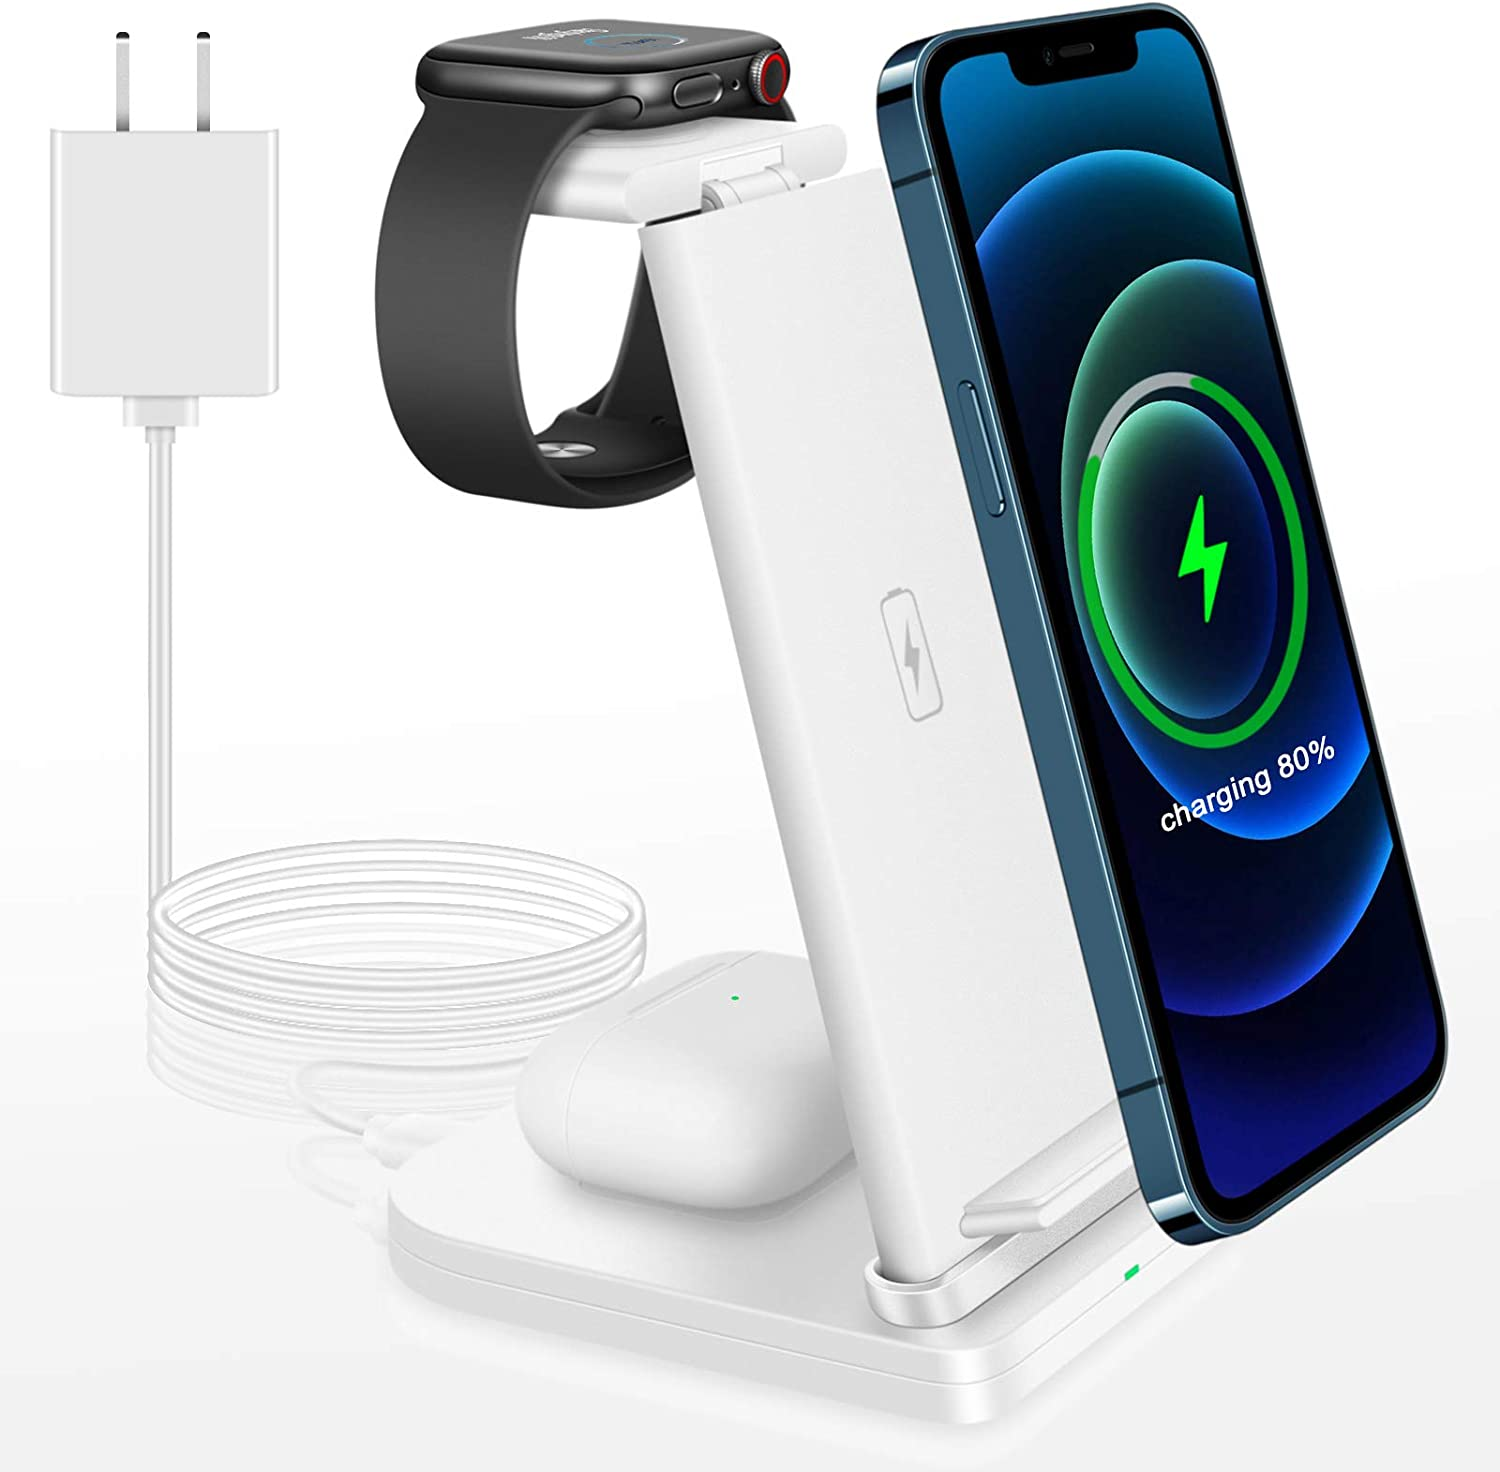 Wireless Charger Stand, 3 in 1 Qi-Certified Wireless Charging Station for AirPods/Airpods 2 Pro iWatch 5/4/3/2,Fast Wireless Charging Stand Dock for iPhone 12/11 Pro/11 Pro Max/SE/XR/XS Max